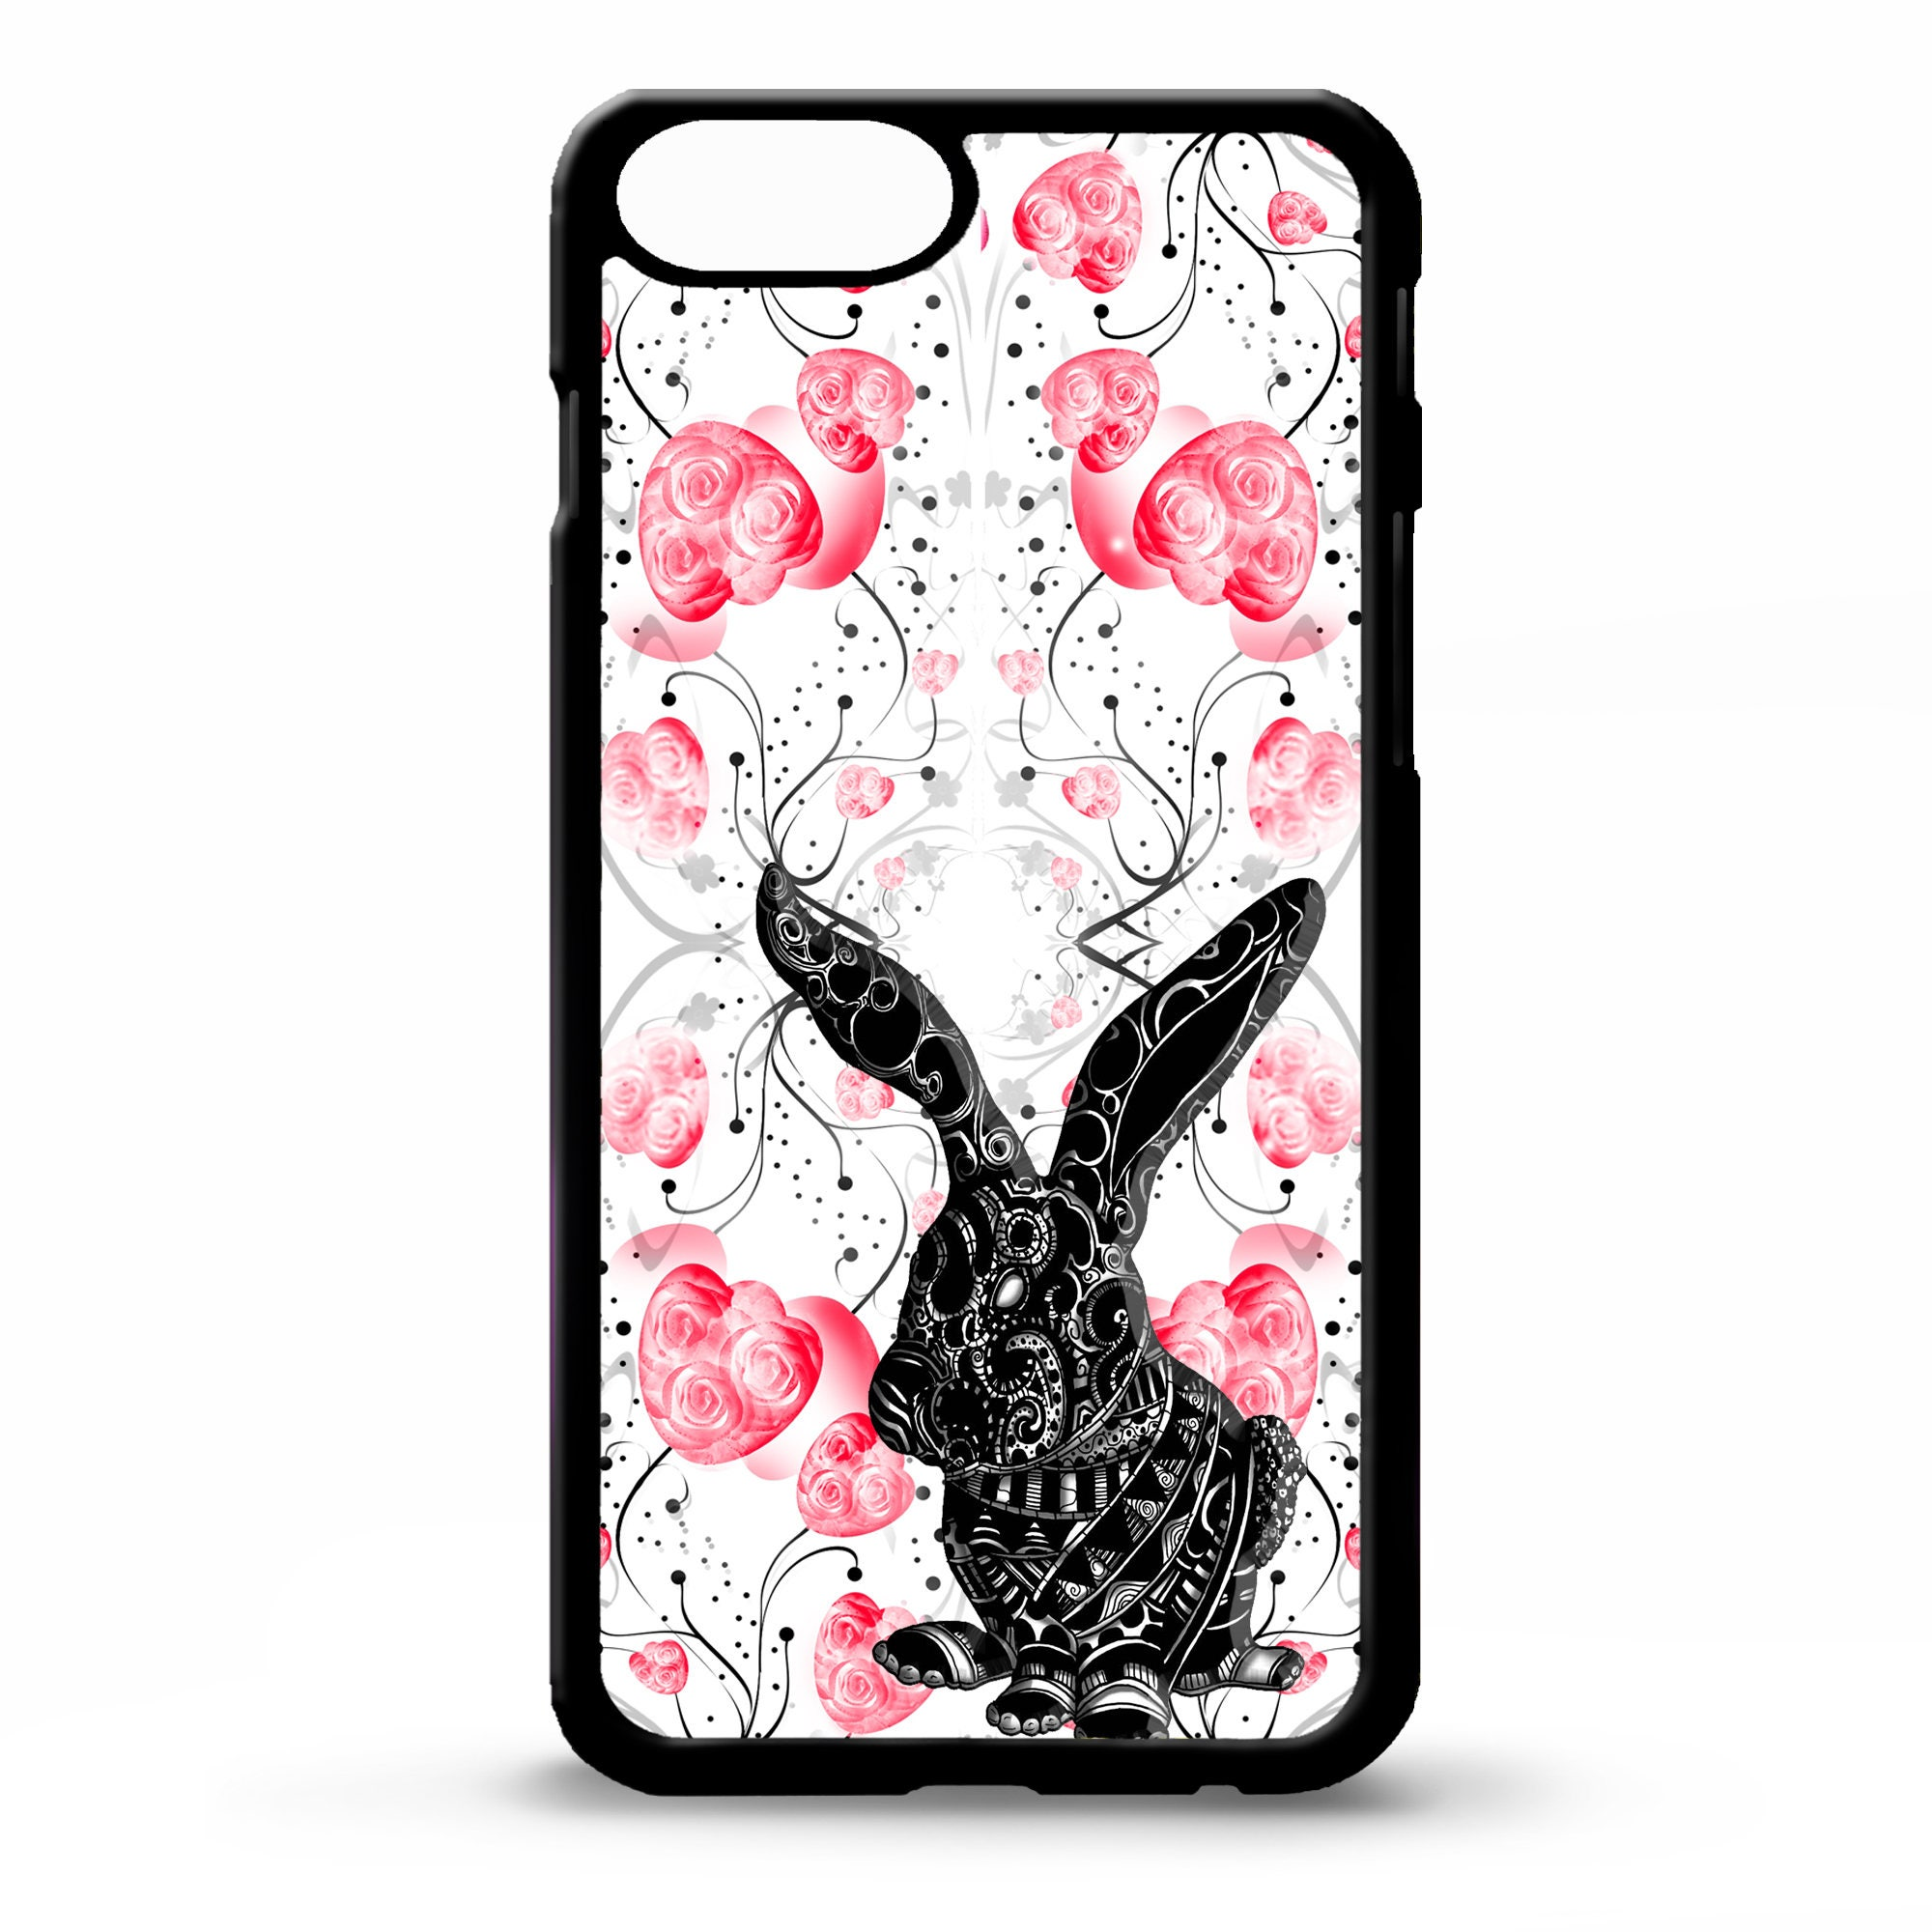 Electronics Cases Custom Hardcase Midnight Dots Iphone 4 5 5c 6 Plus 7 Case Bunny Rabbit Animal Floral Flower Pretty Girly Vintage Fashion Pattern Cover For Samsung Galaxy S5 S6